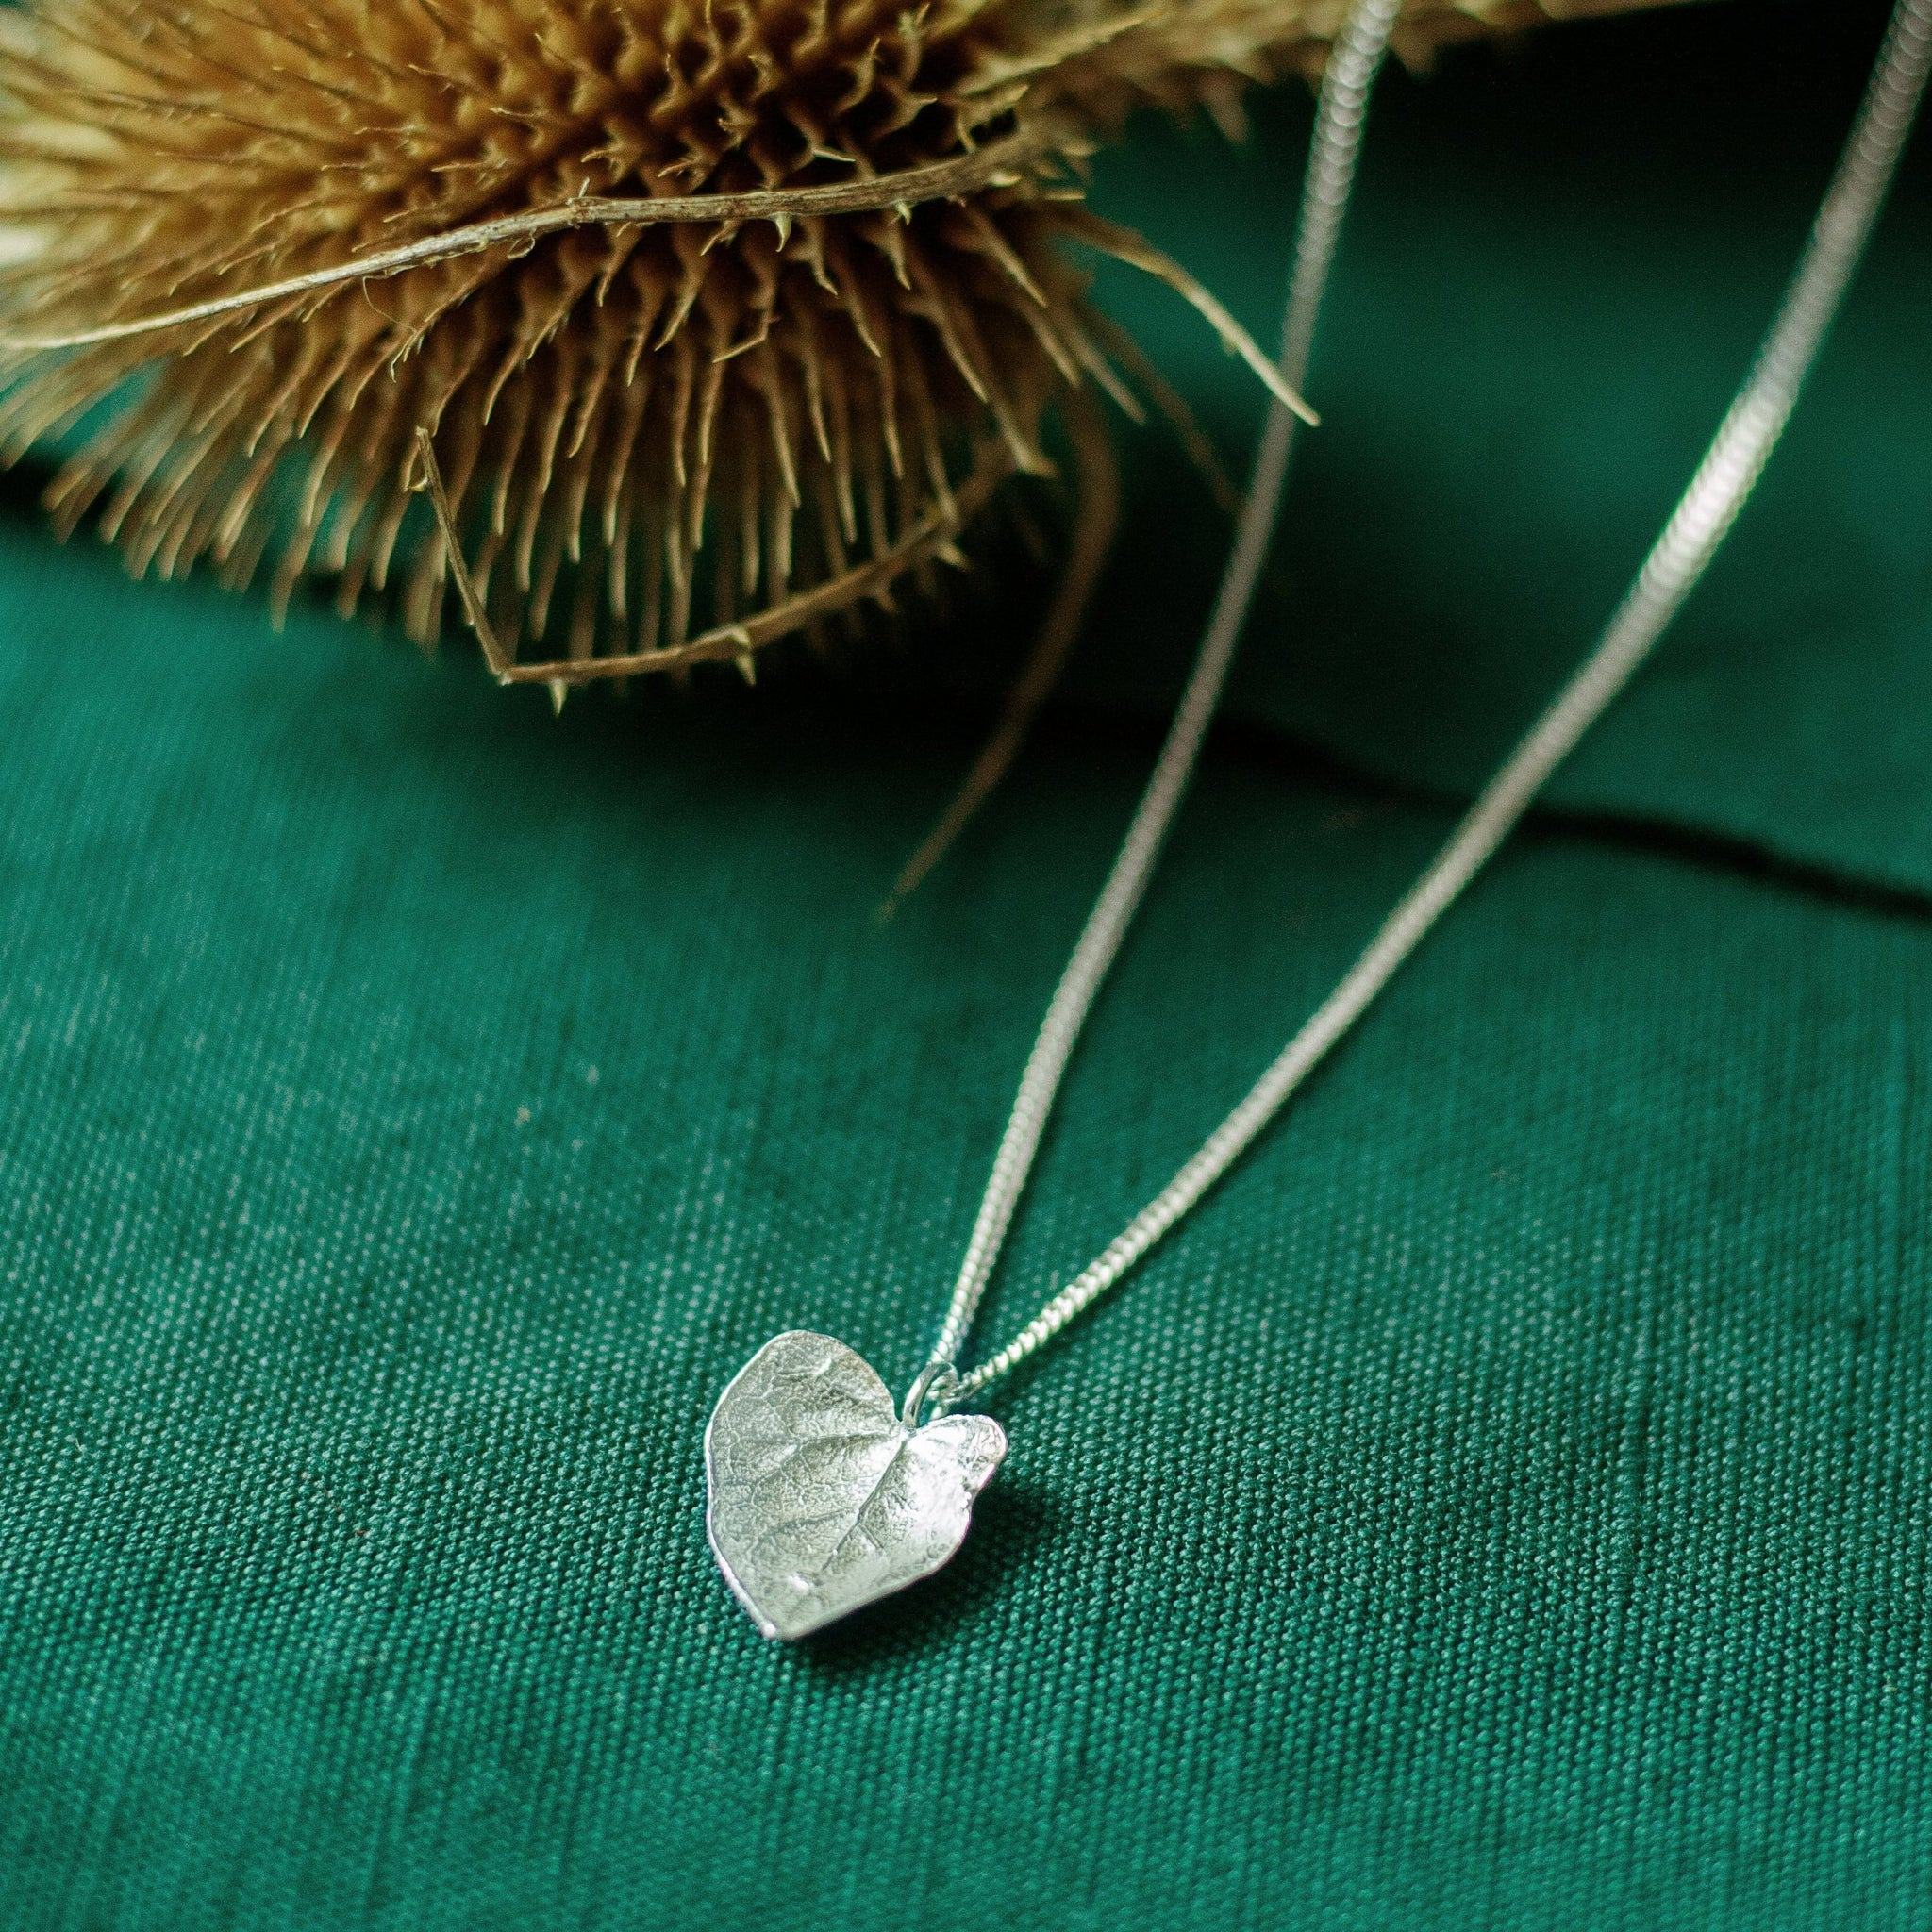 silver ivy leaf necklace on green background with dried flower